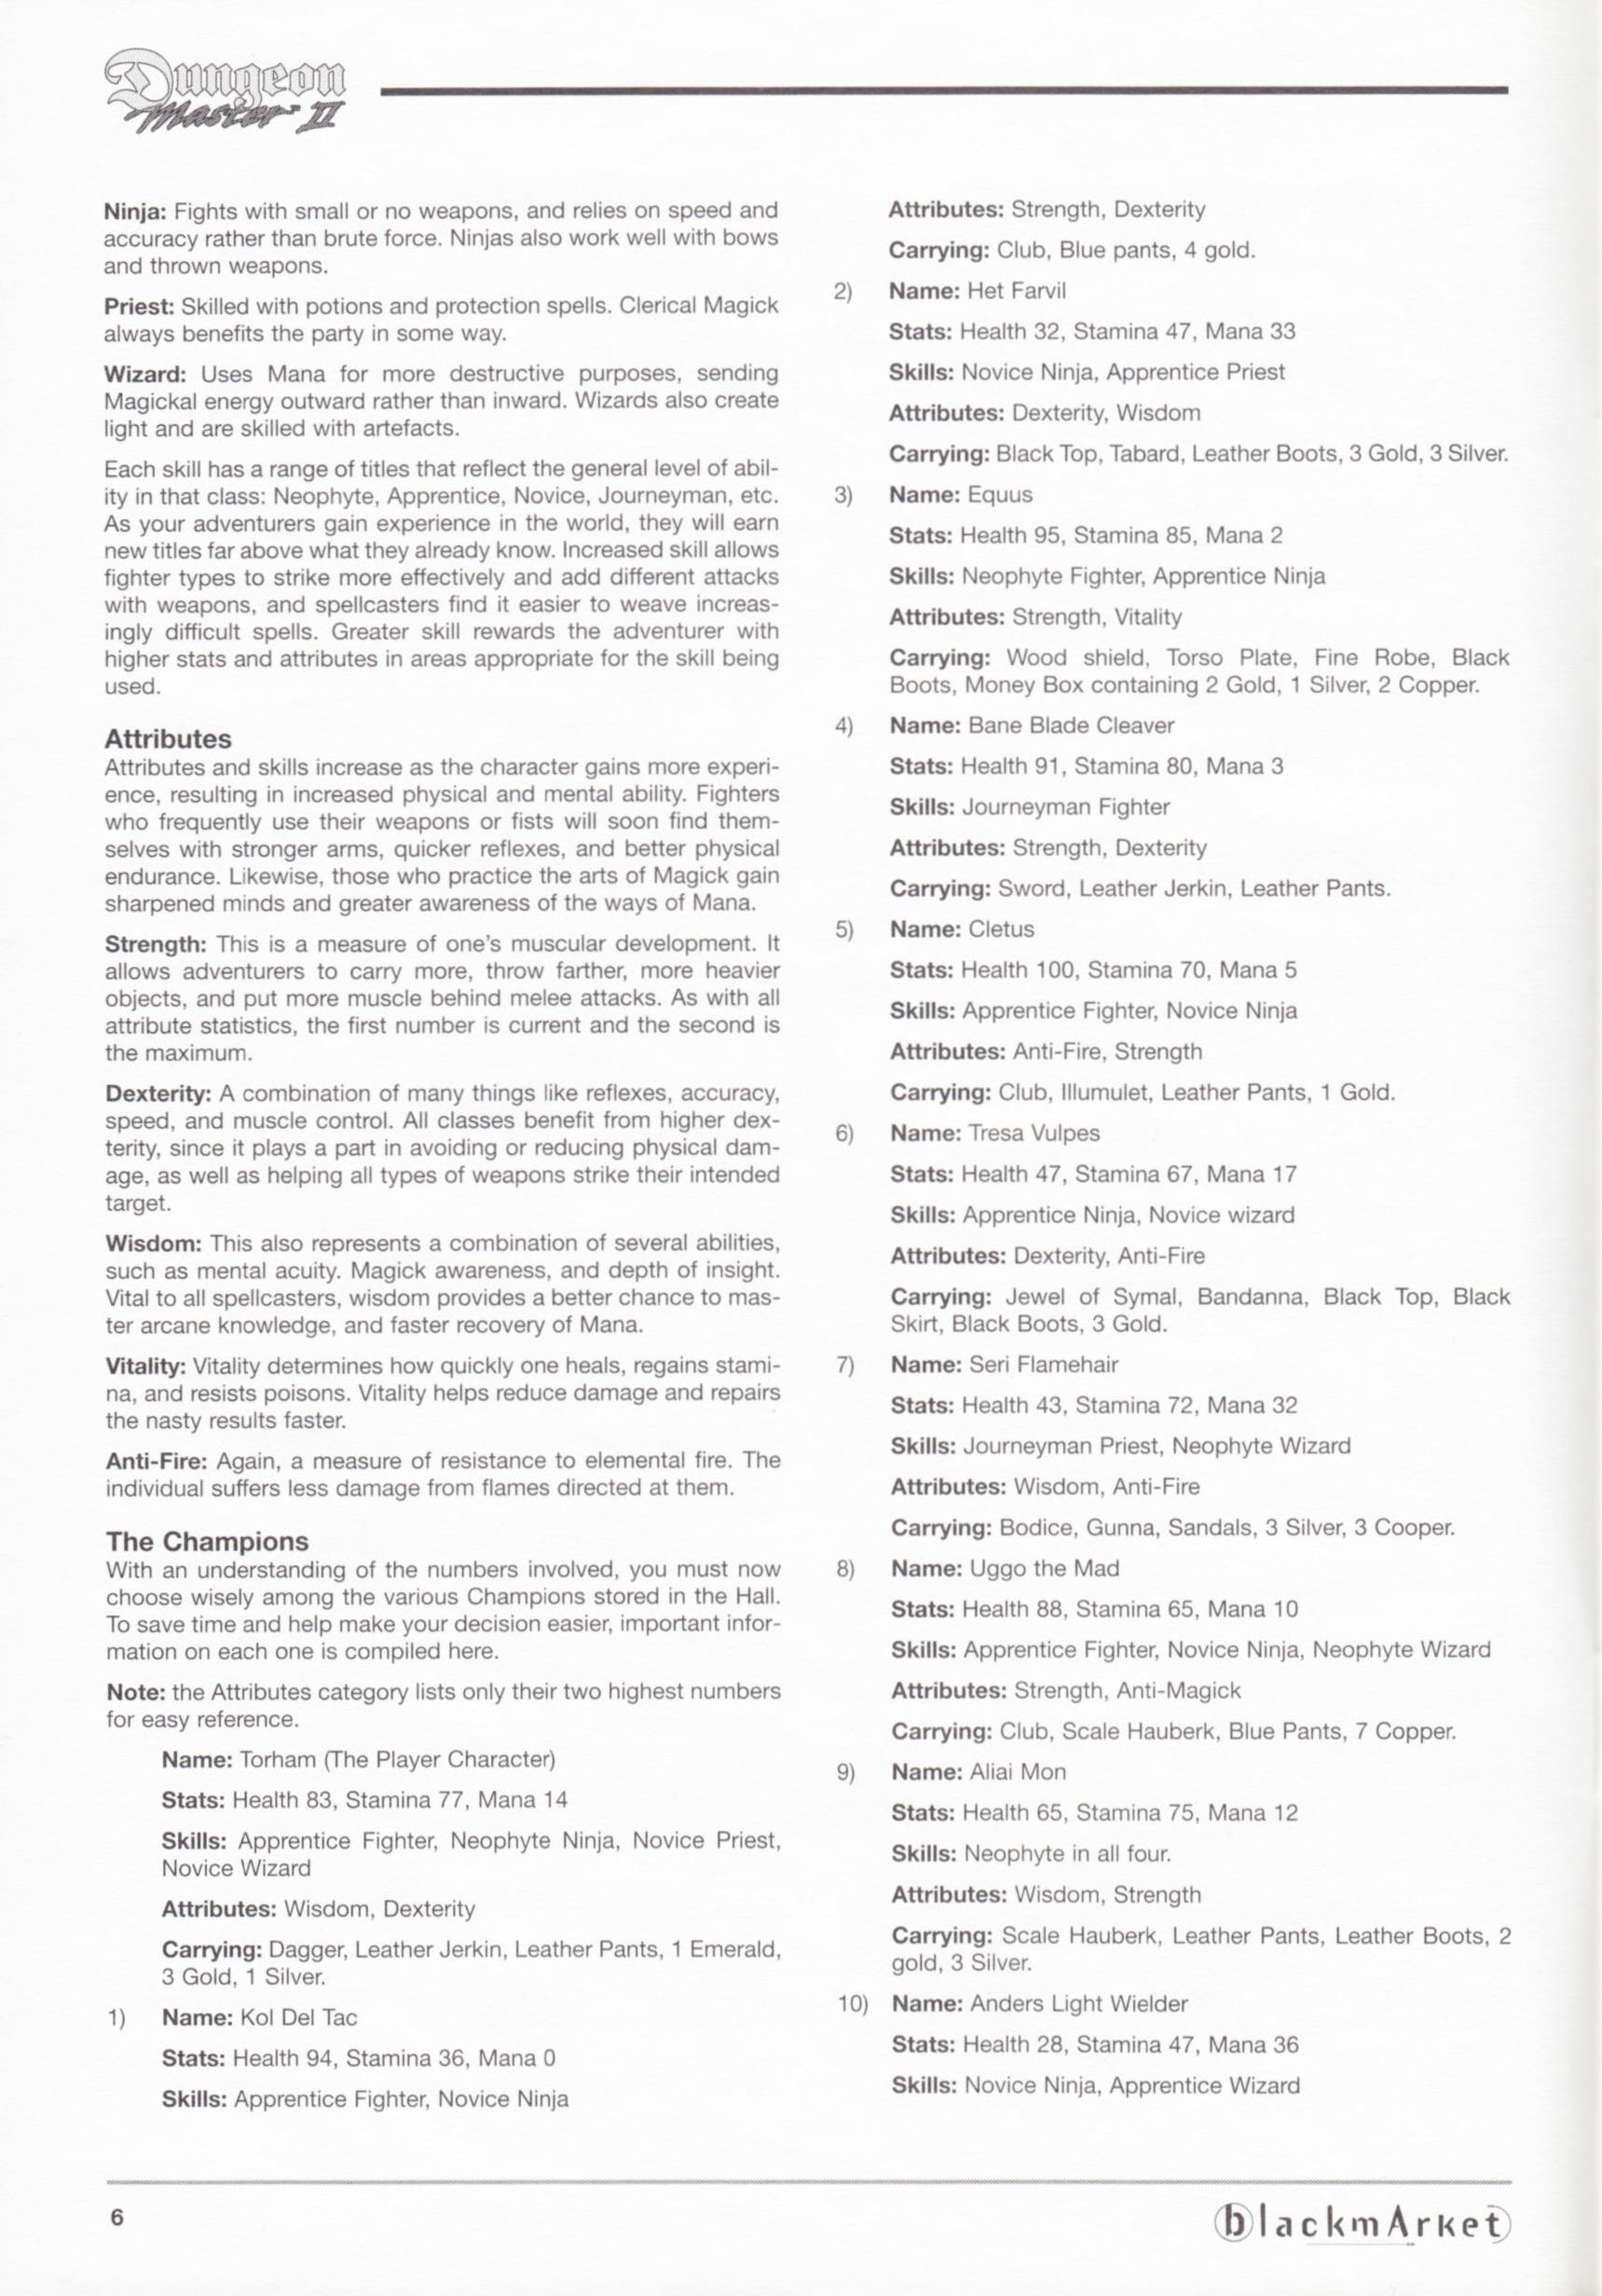 Game - Dungeon Master II - DE - PC - Blackmarket With Manual - Manual - Page 008 - Scan